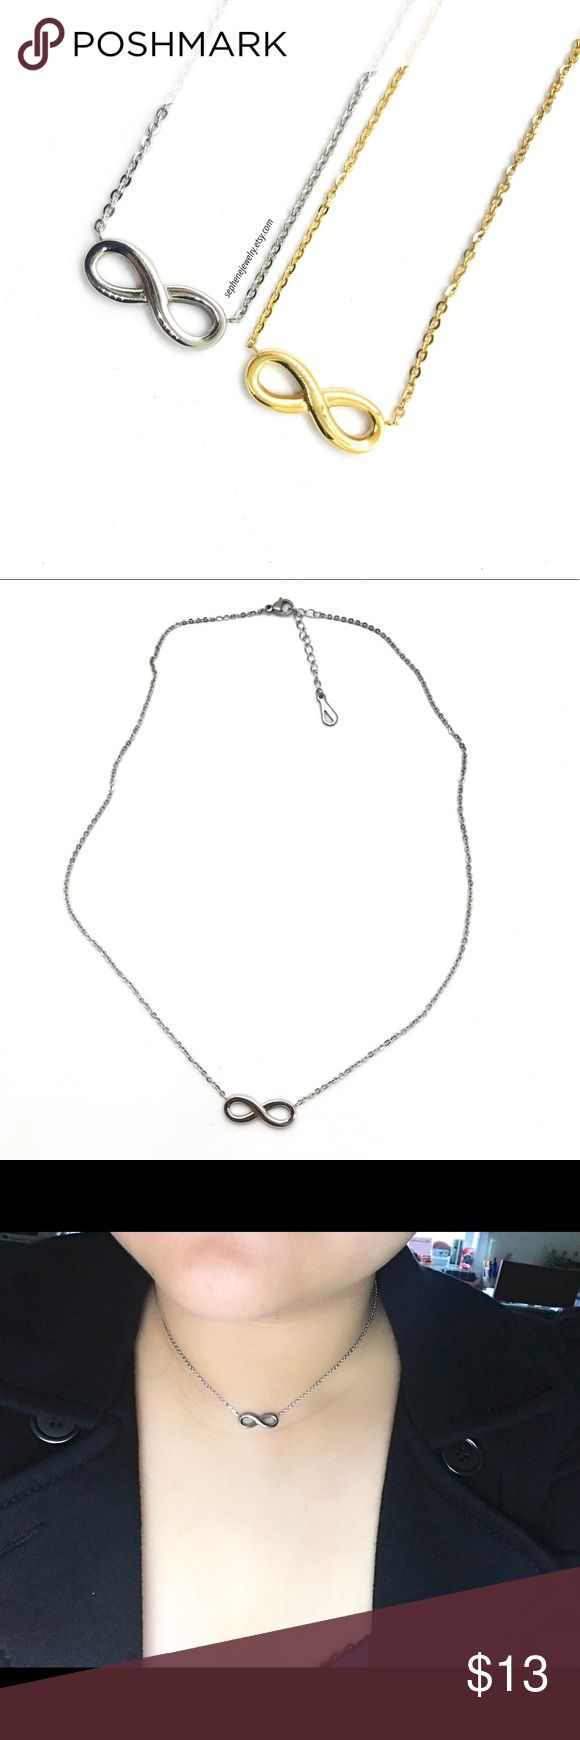 Infinity Necklace, Silver Finish, Everlasting Love Infinity Necklace ** this listing is for Silver Color ** Can be worn as a choker or regular necklace. Perfect layering piece.  The meaning behind an infinity necklace is actually quite beautiful - it symbolizes eternity, empowerment, and everlasting love.  Dimensions Chain: 16 inches length with 2 inches extensions Pendant: 20 mm x 8 mm  Material:  Stainless Steel  Most higher end watches are made of stainless steel. It is strong, durable…